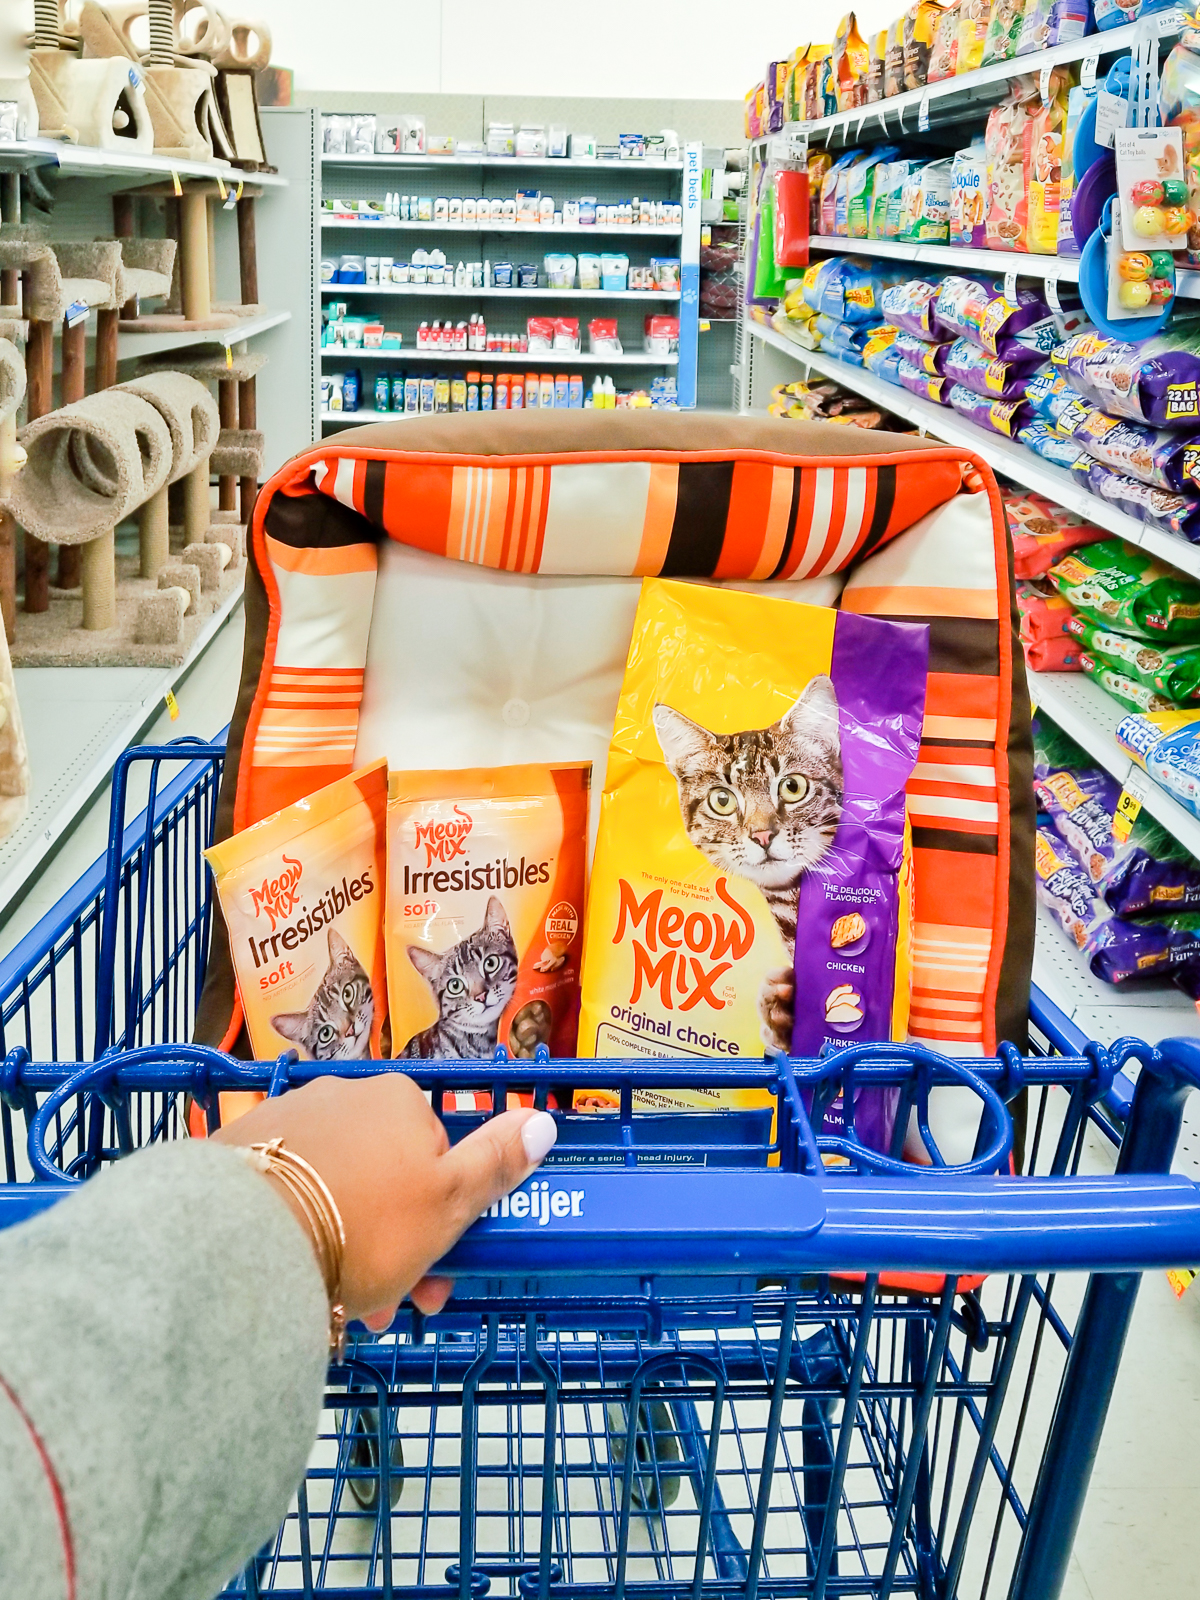 Sale on Meow Mix in Chicago